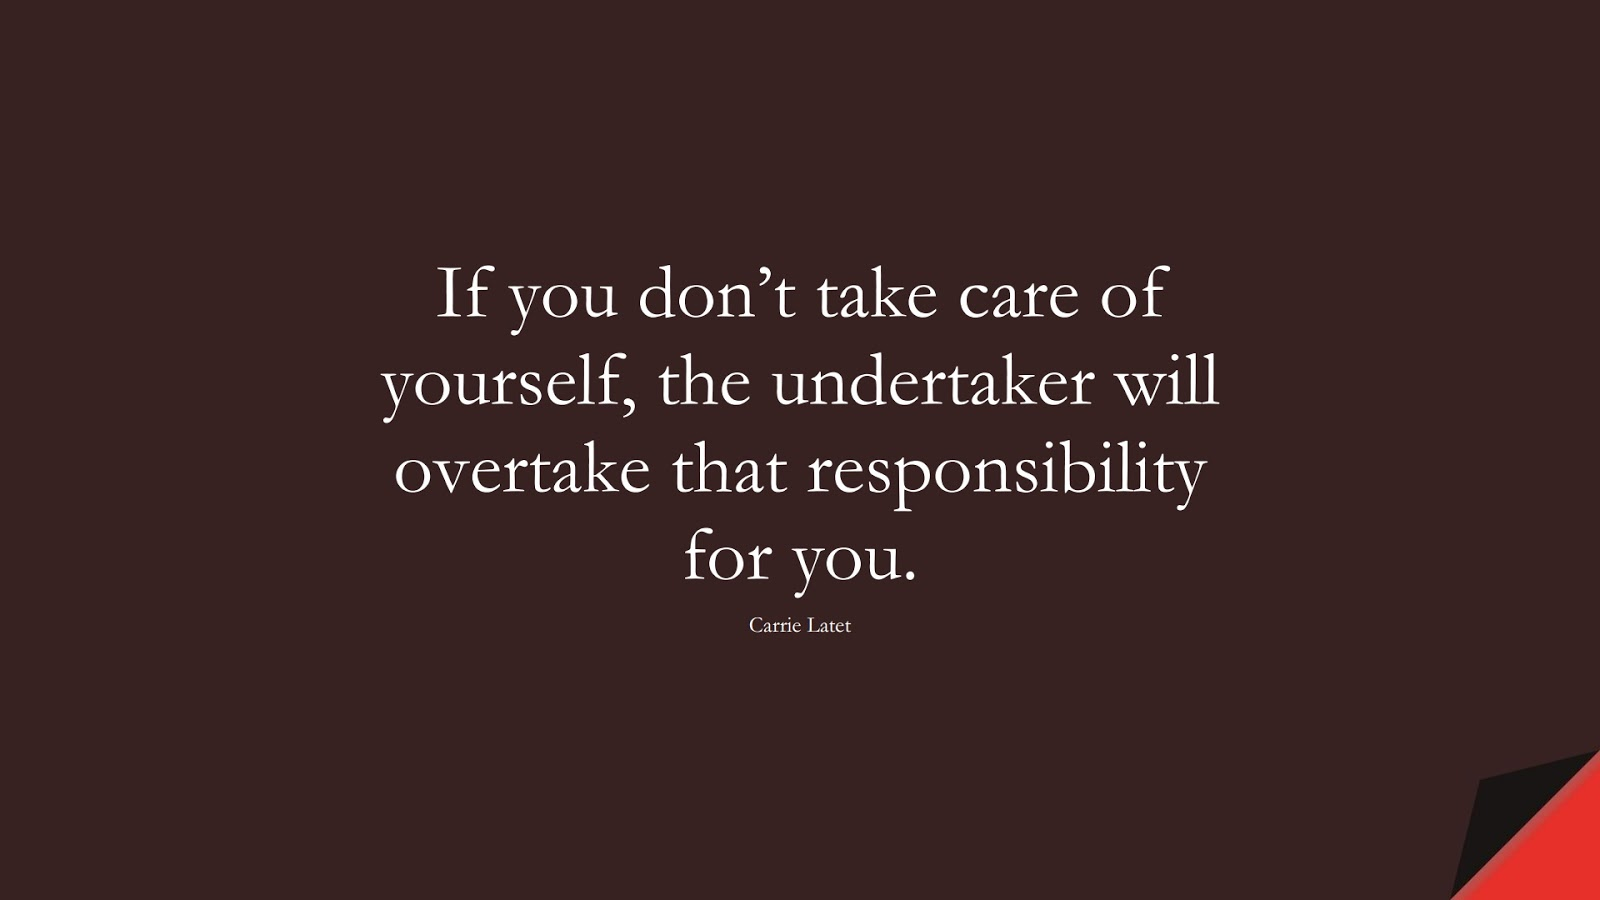 If you don't take care of yourself, the undertaker will overtake that responsibility for you. (Carrie Latet);  #HealthQuotes